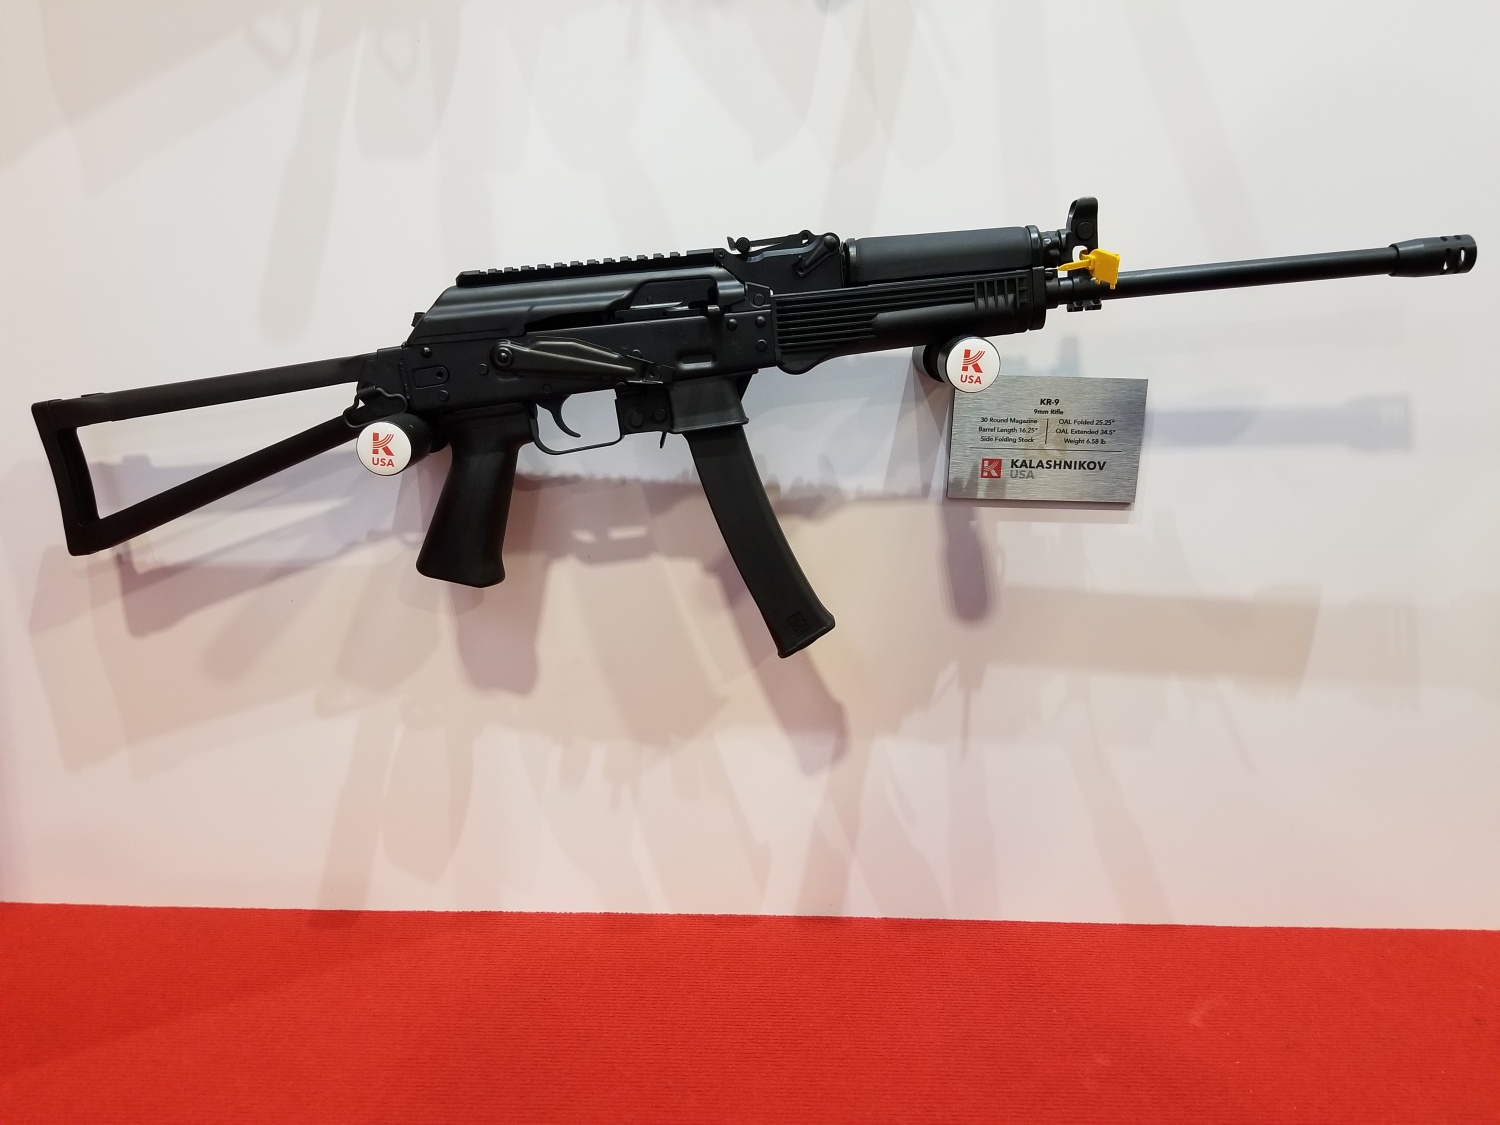 KR-9 rifle with 16.25 inch barrel.